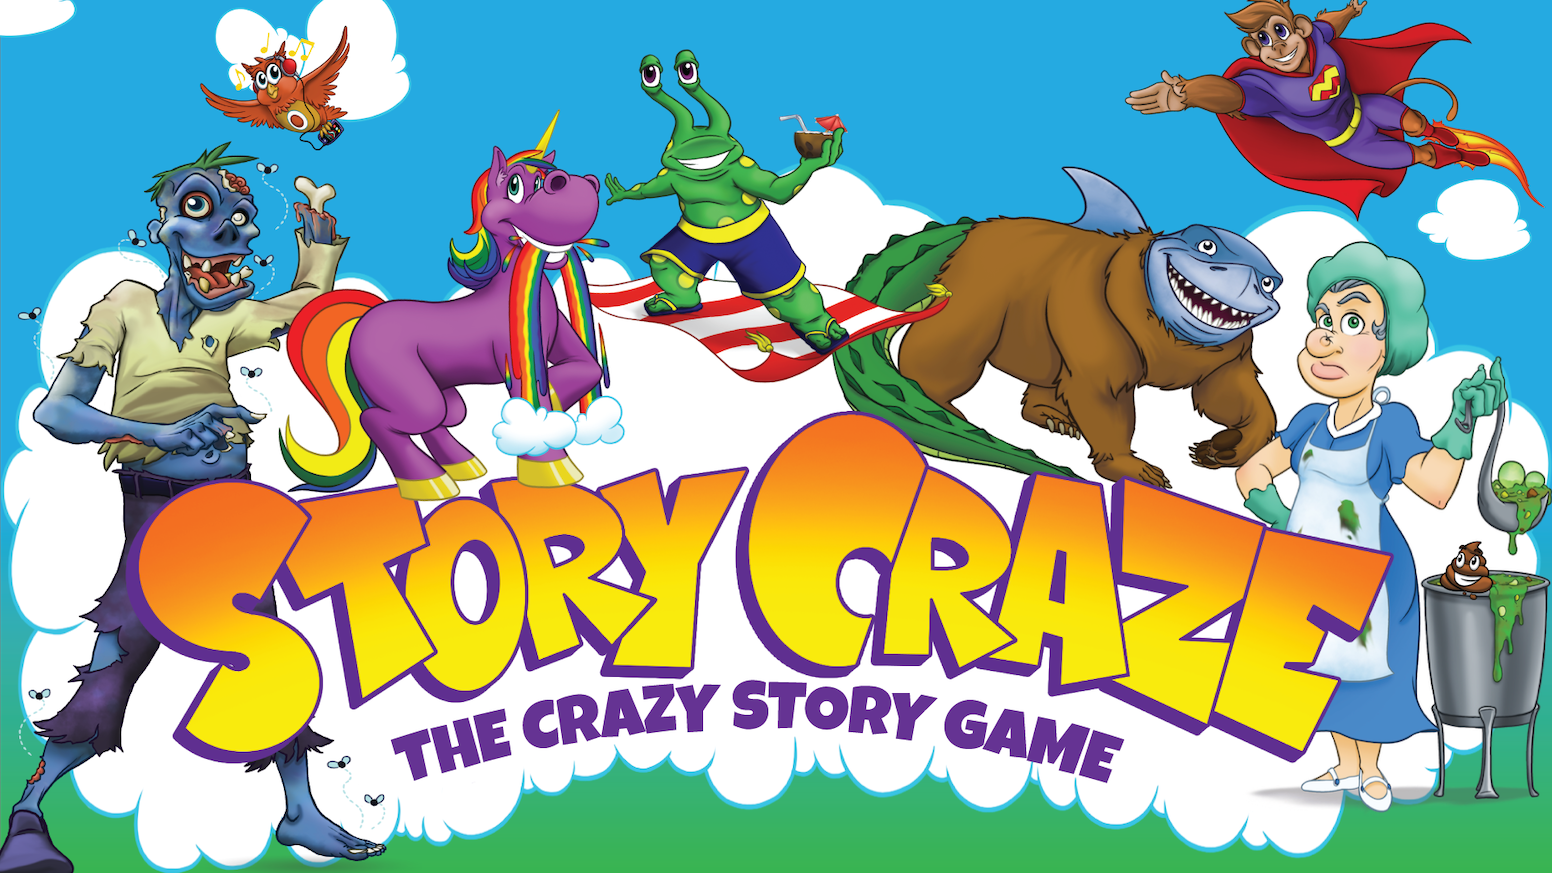 The hot, new hilarious and educational creative writing and storytelling game. Kids 6+.Use random PEOPLE, PLACES, + THINGS cards as cues to ignite outside-the-box thinking to make up outrageously witty, laugh out loud3-chapter stories. storycraze.com